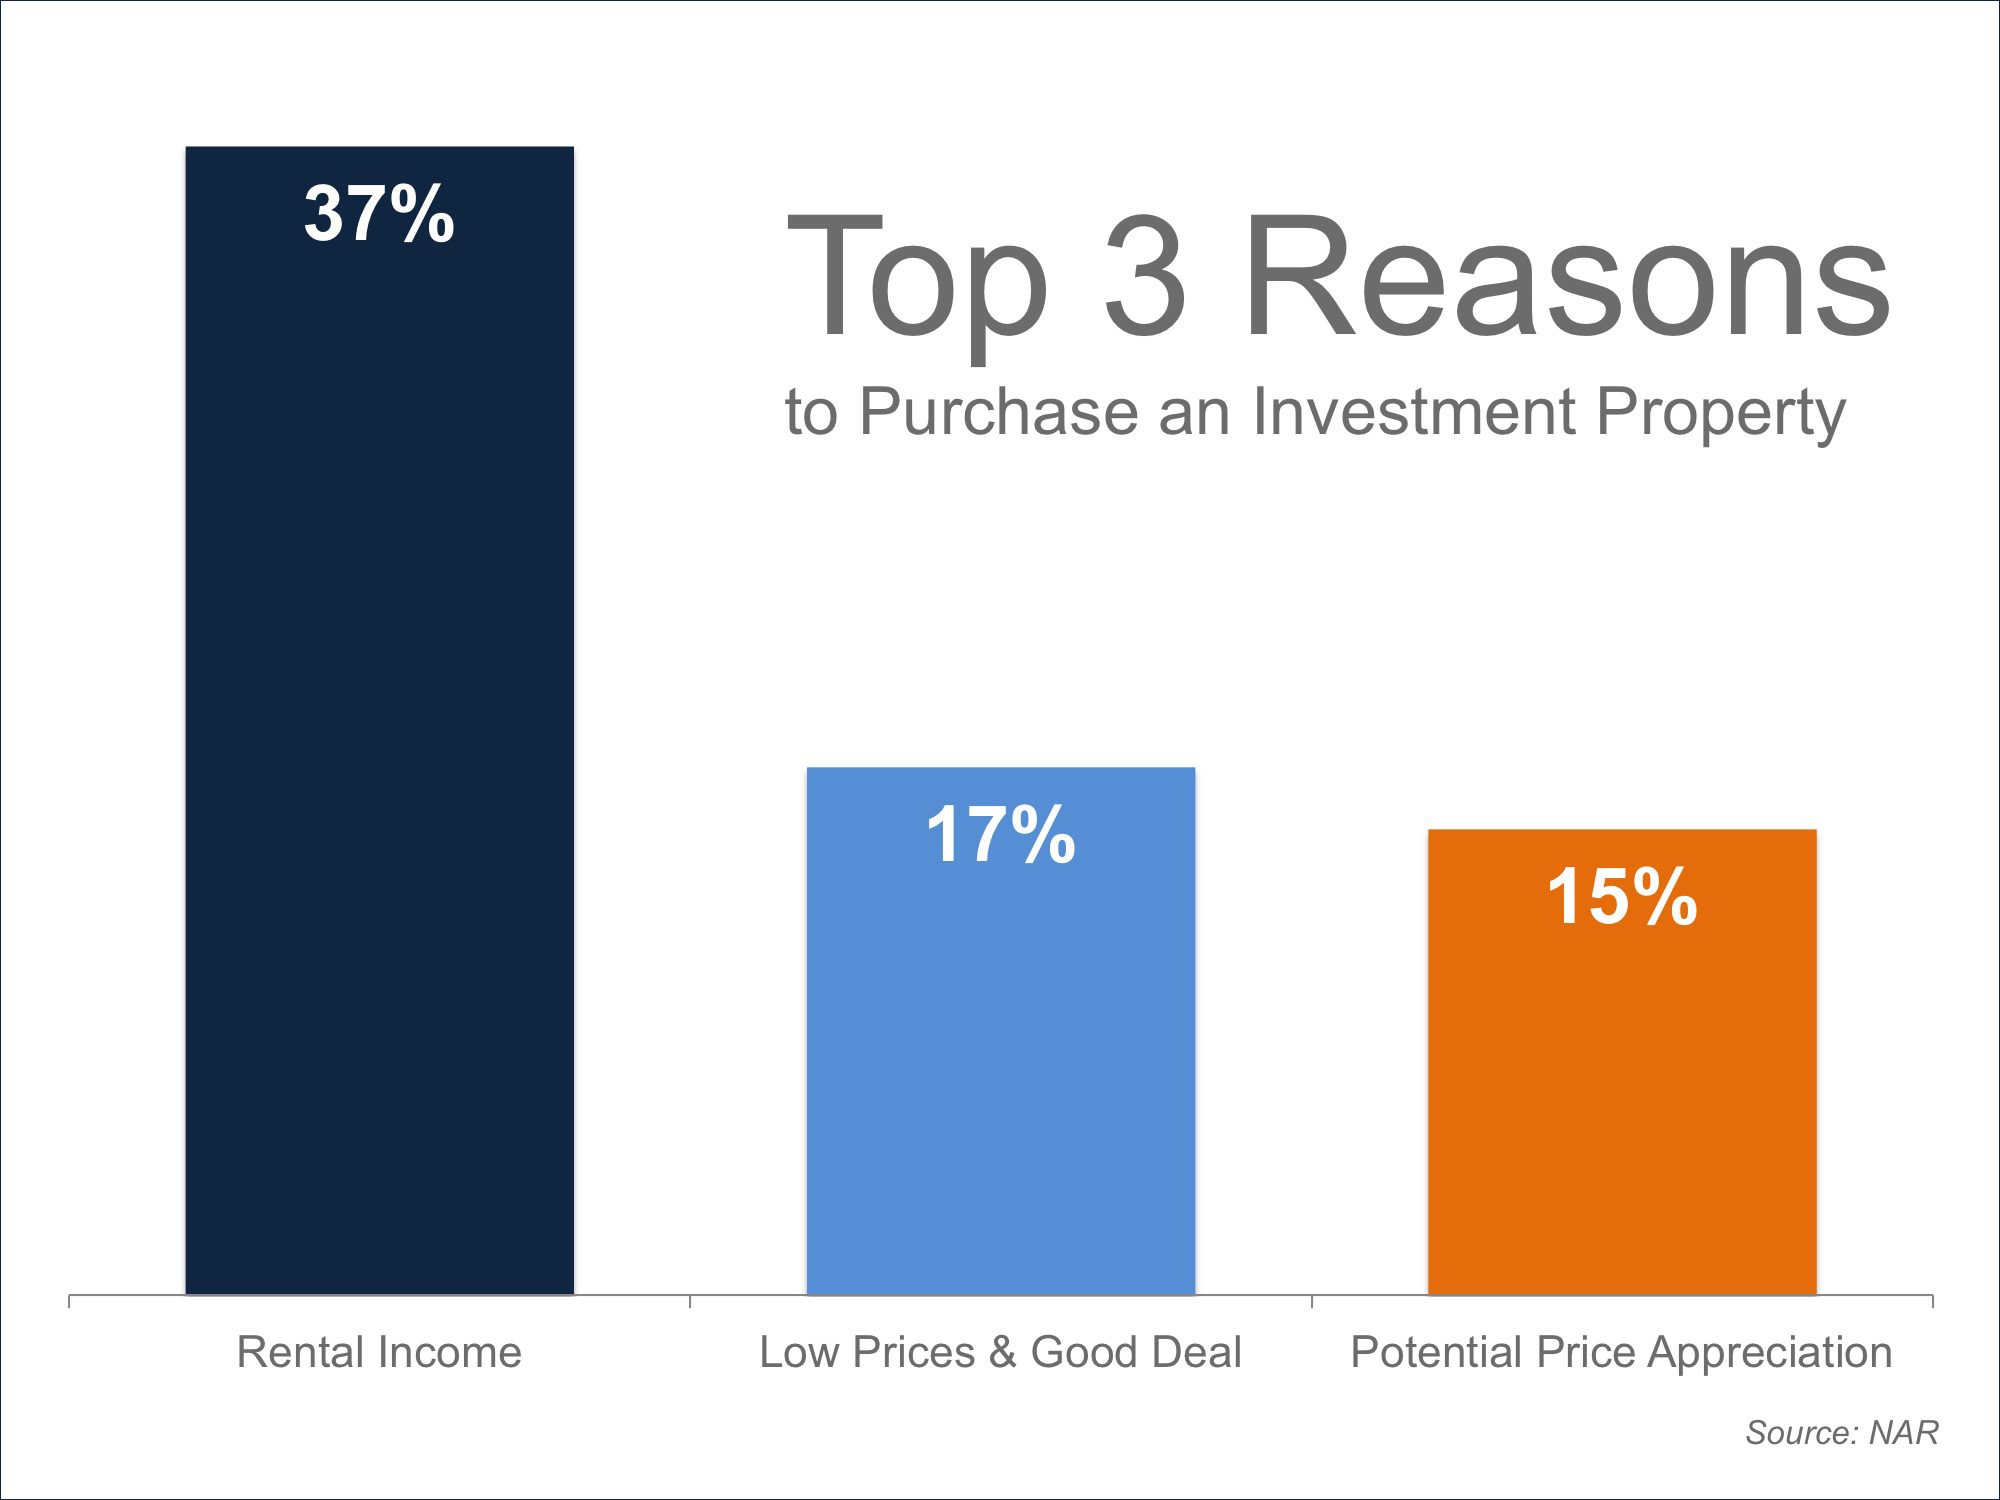 Top 3 Reasons to Purchase | Simplifying The Market